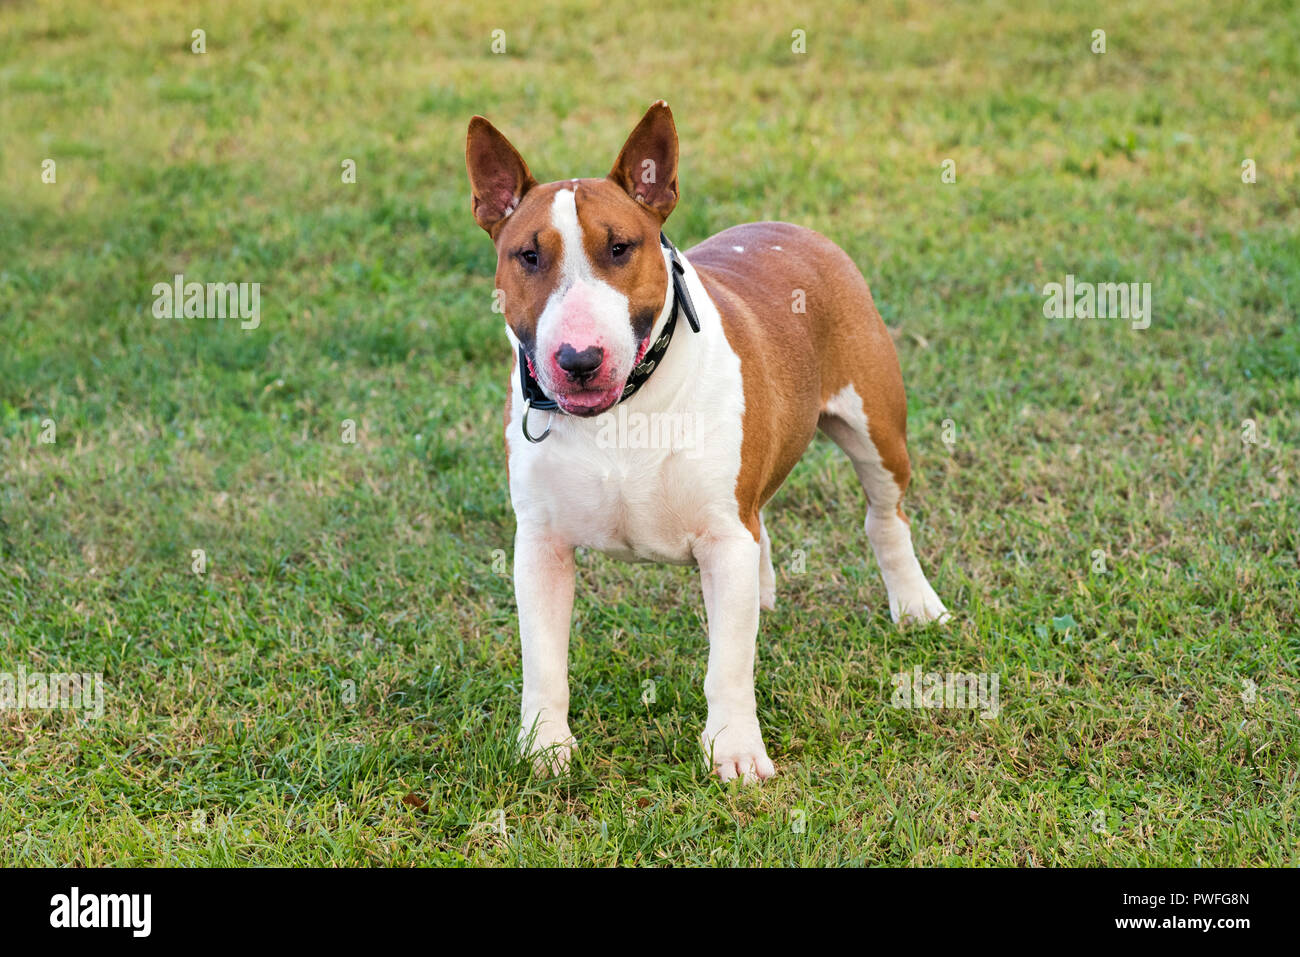 White and fawn Bull terrier dog looking at camera viewed in close-up from its front standing on green grass lawn - Stock Image